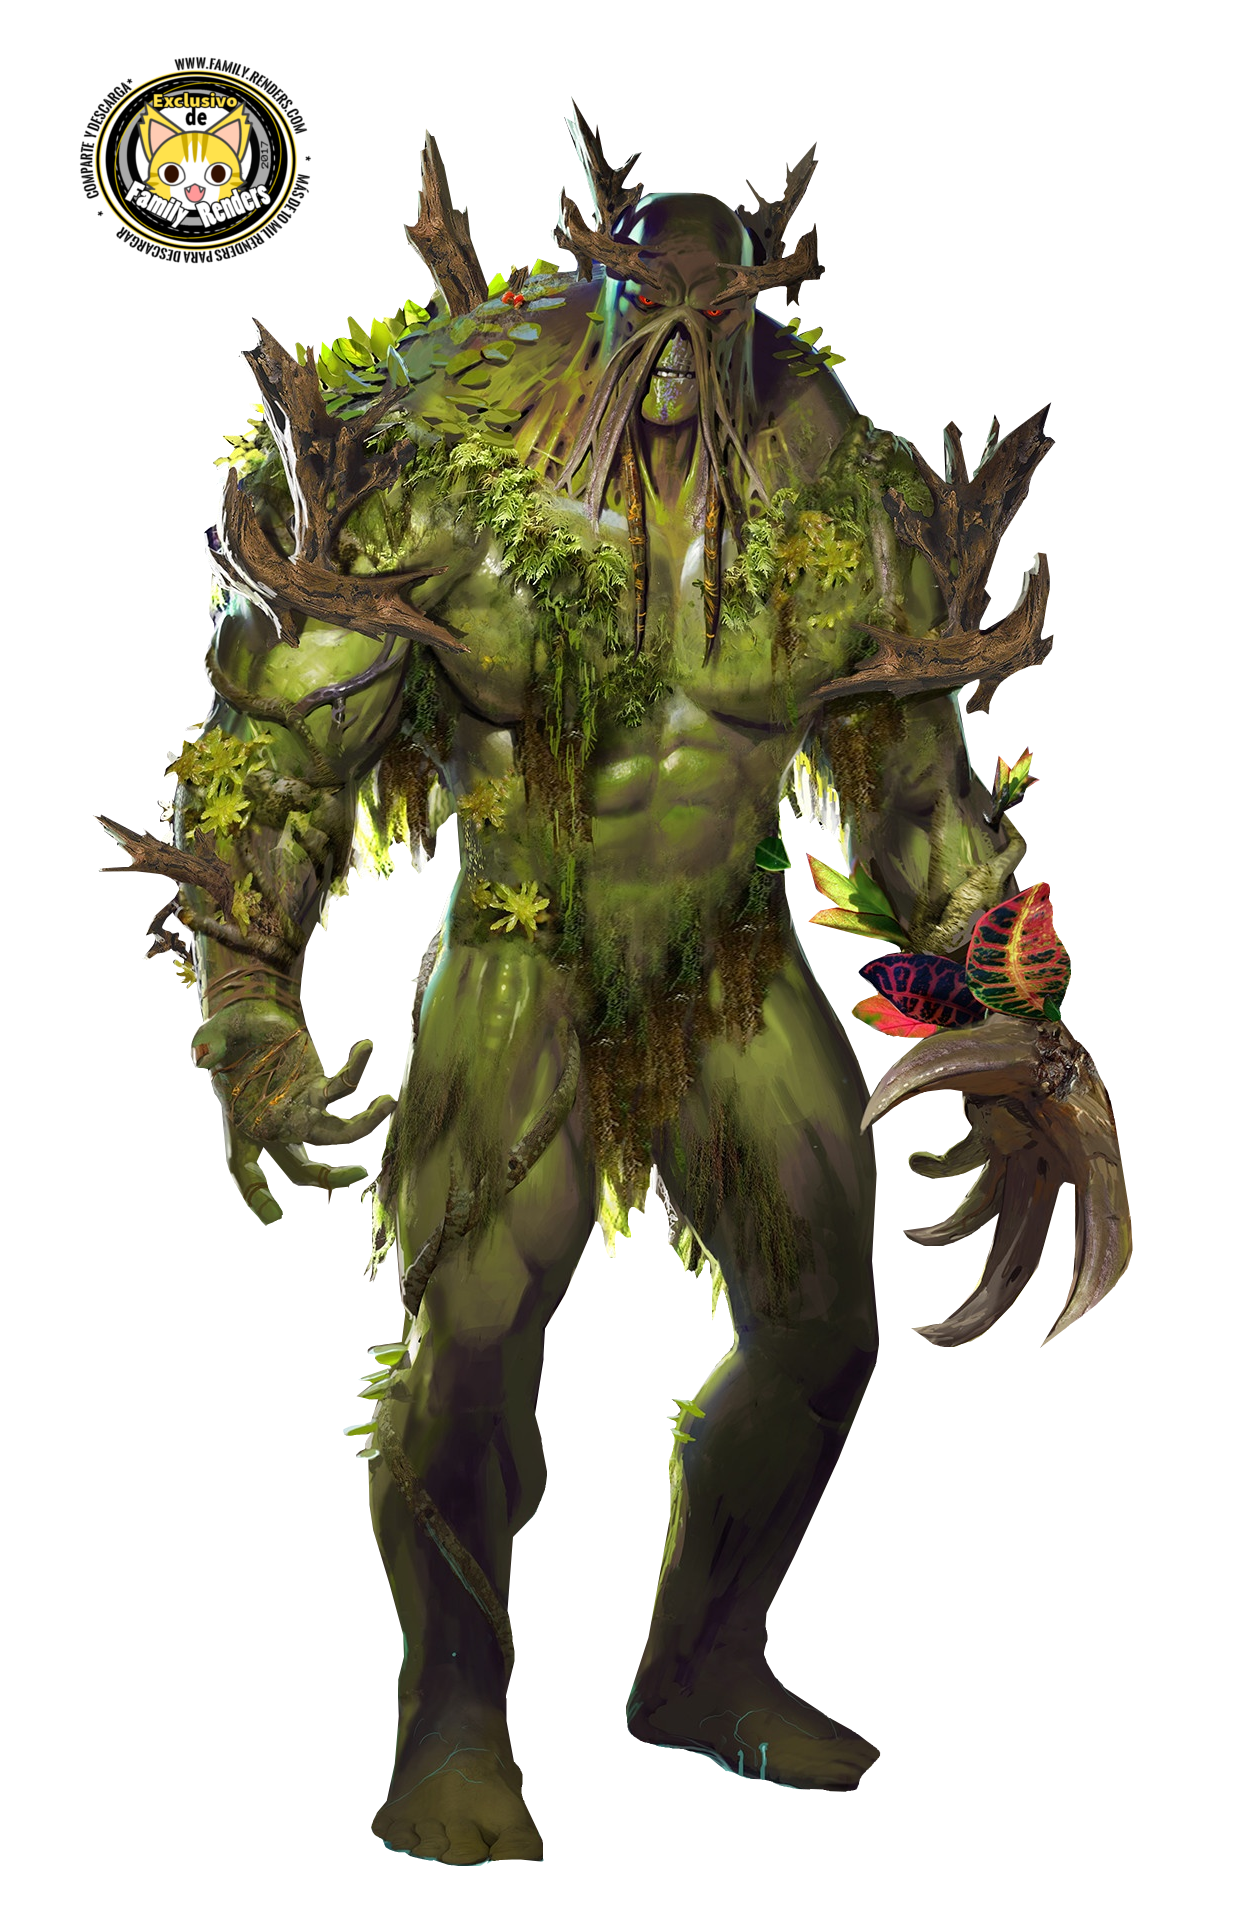 render La cosa del pantano (Swamp Thing)